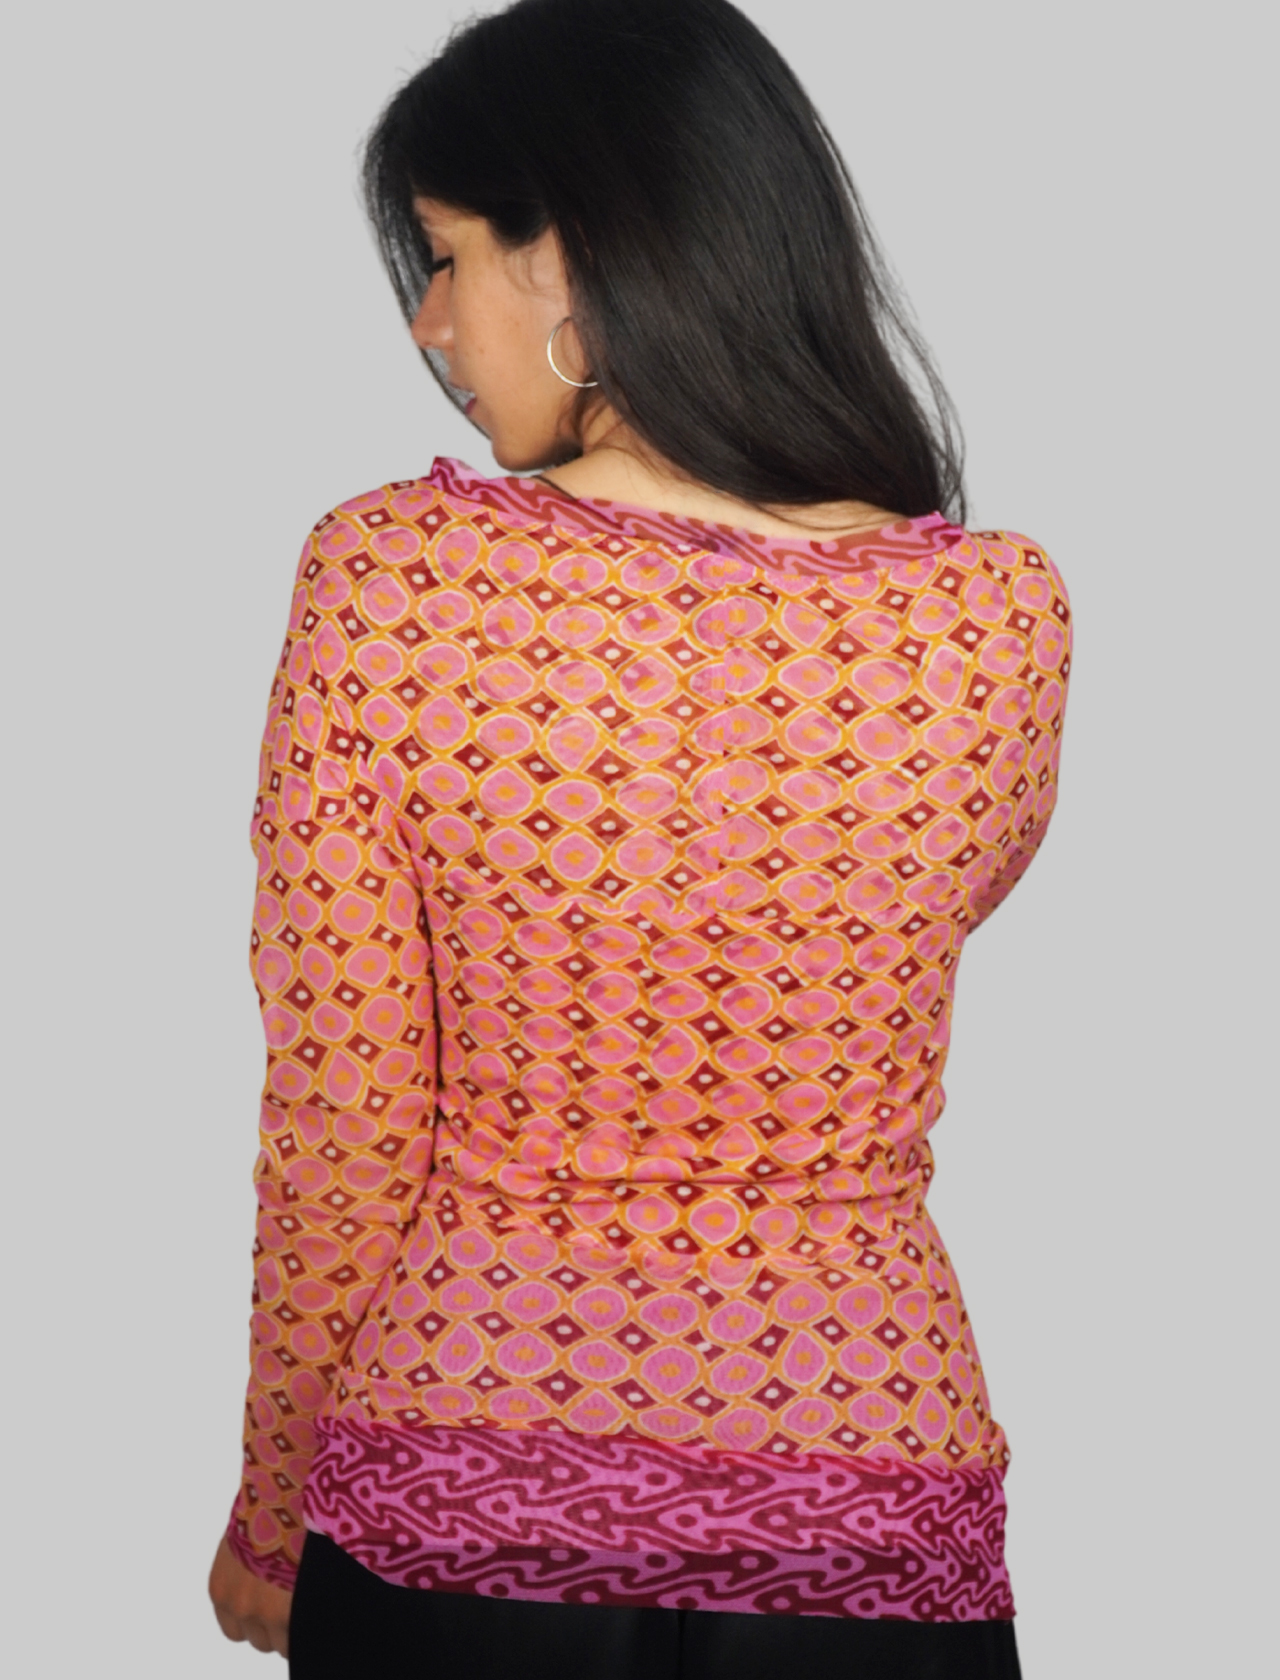 Women's Clothing Long Sleeve Tribal Dance T-shirt in Pink and Gold Patterned Tulle Maliparmi | T-shirts and Tops | JK020470494B3221